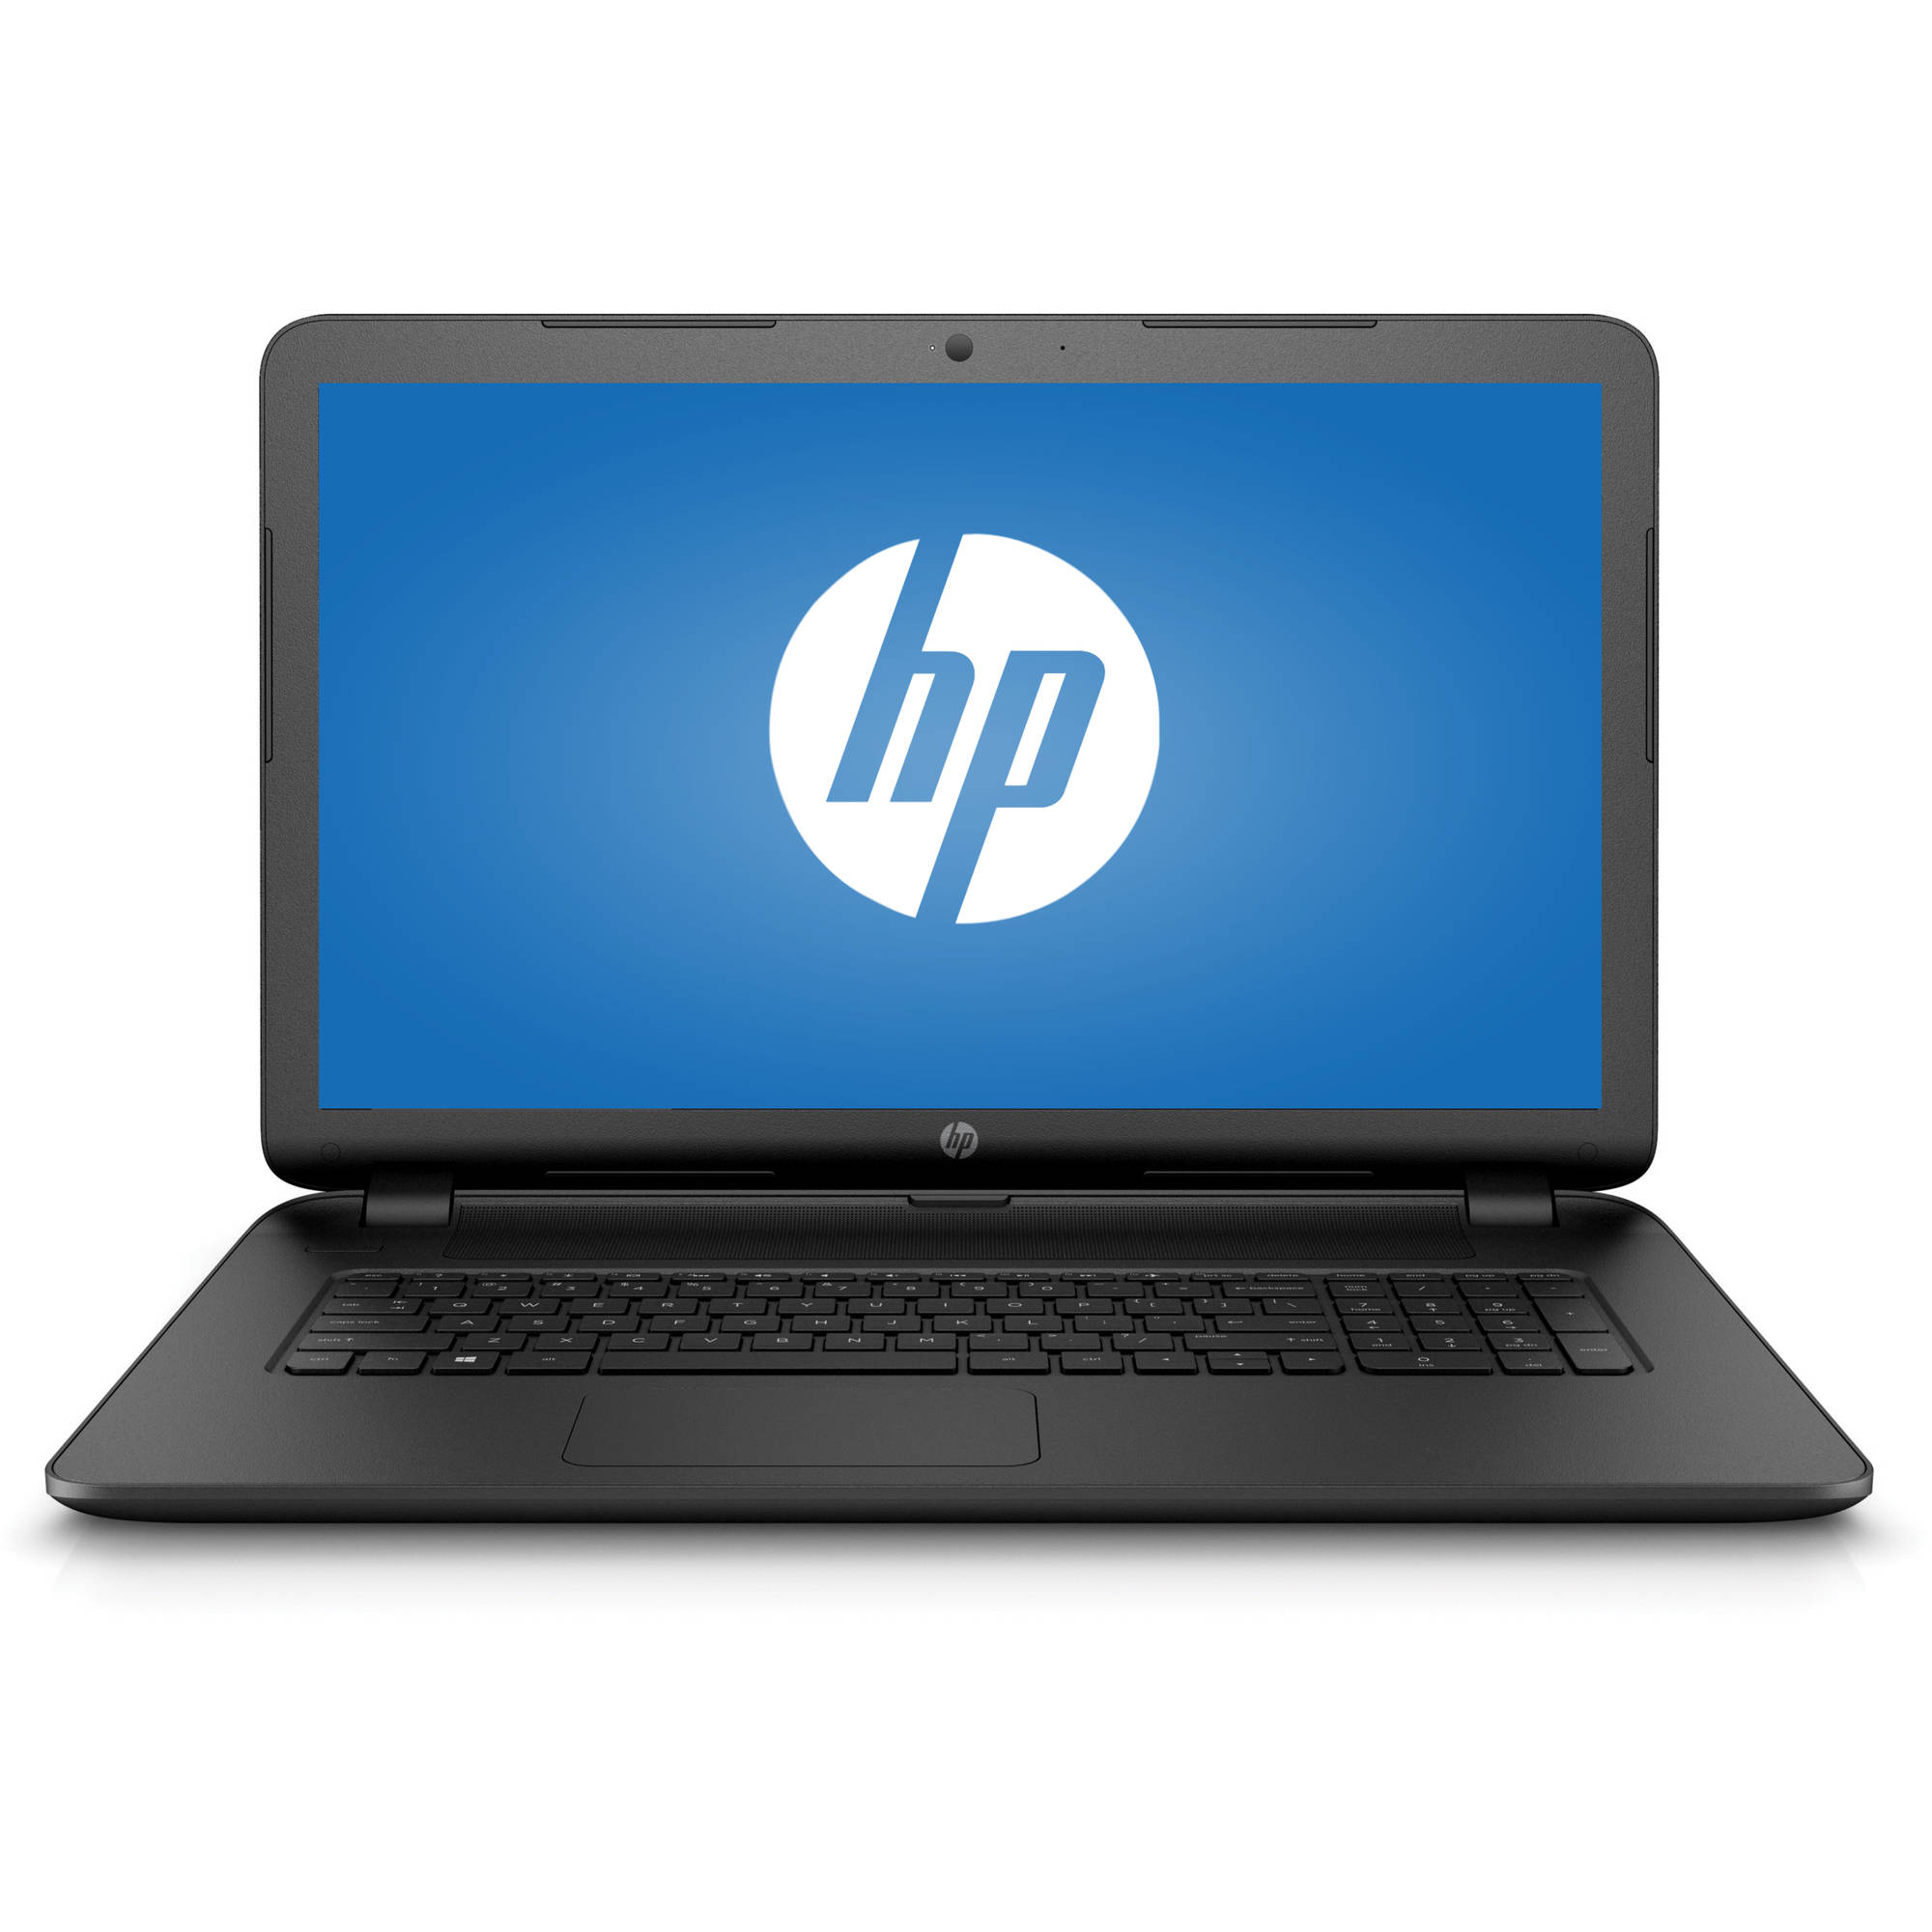 "HP Black 17.3"" 17-p120wm Laptop PC with AMD A8-7050 Dual-Core Processor, 4GB Memory, 750GB Hard Drive and... by HP"